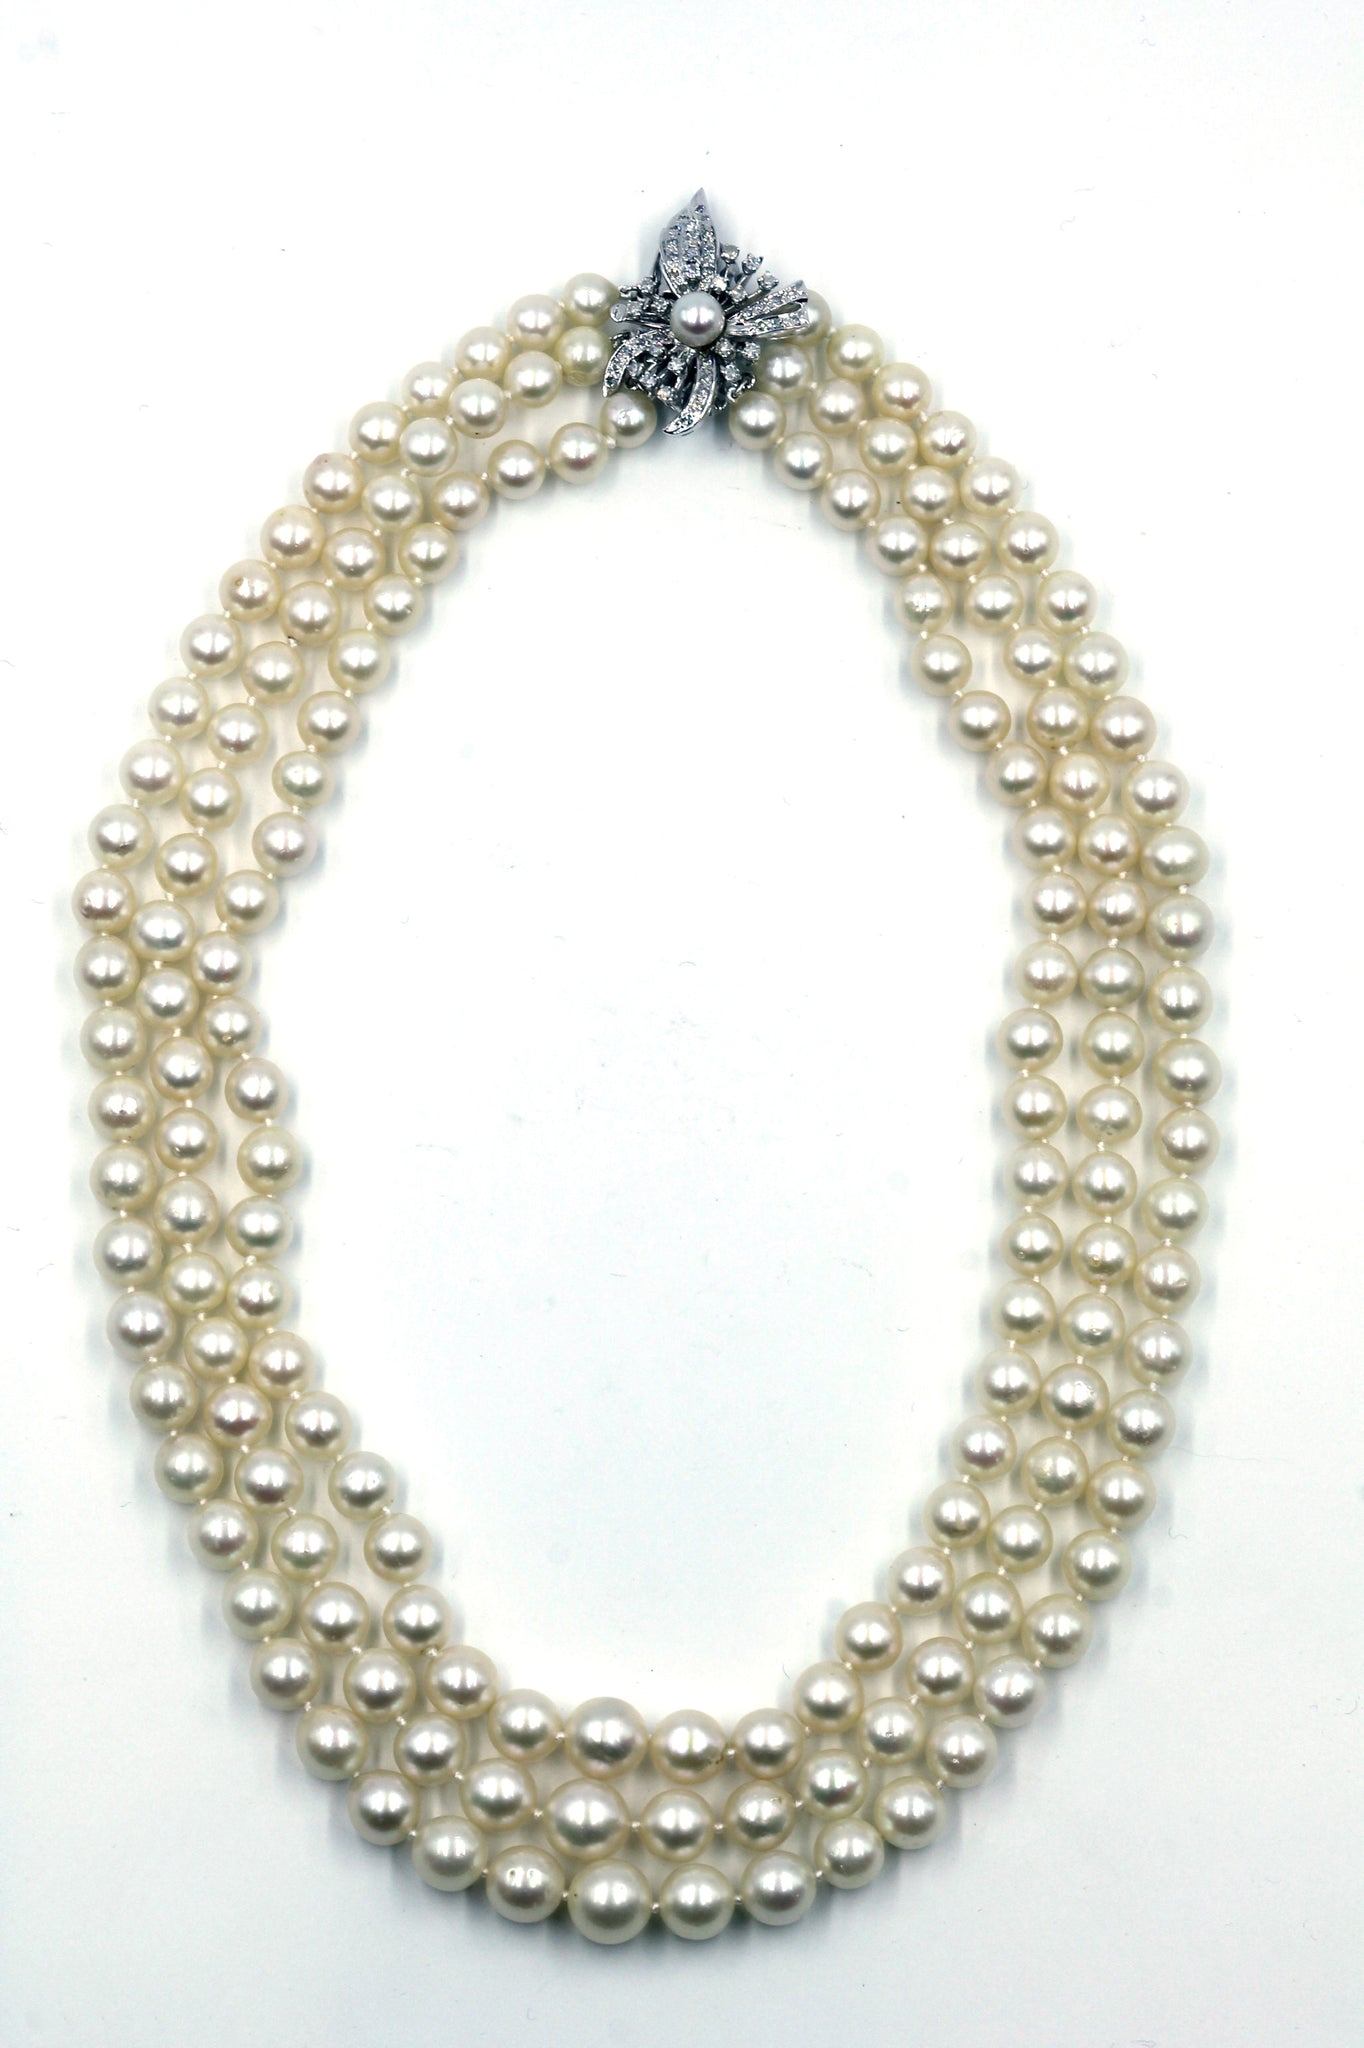 Vintage Akoya Necklace with Diamond Clasp, SOLD